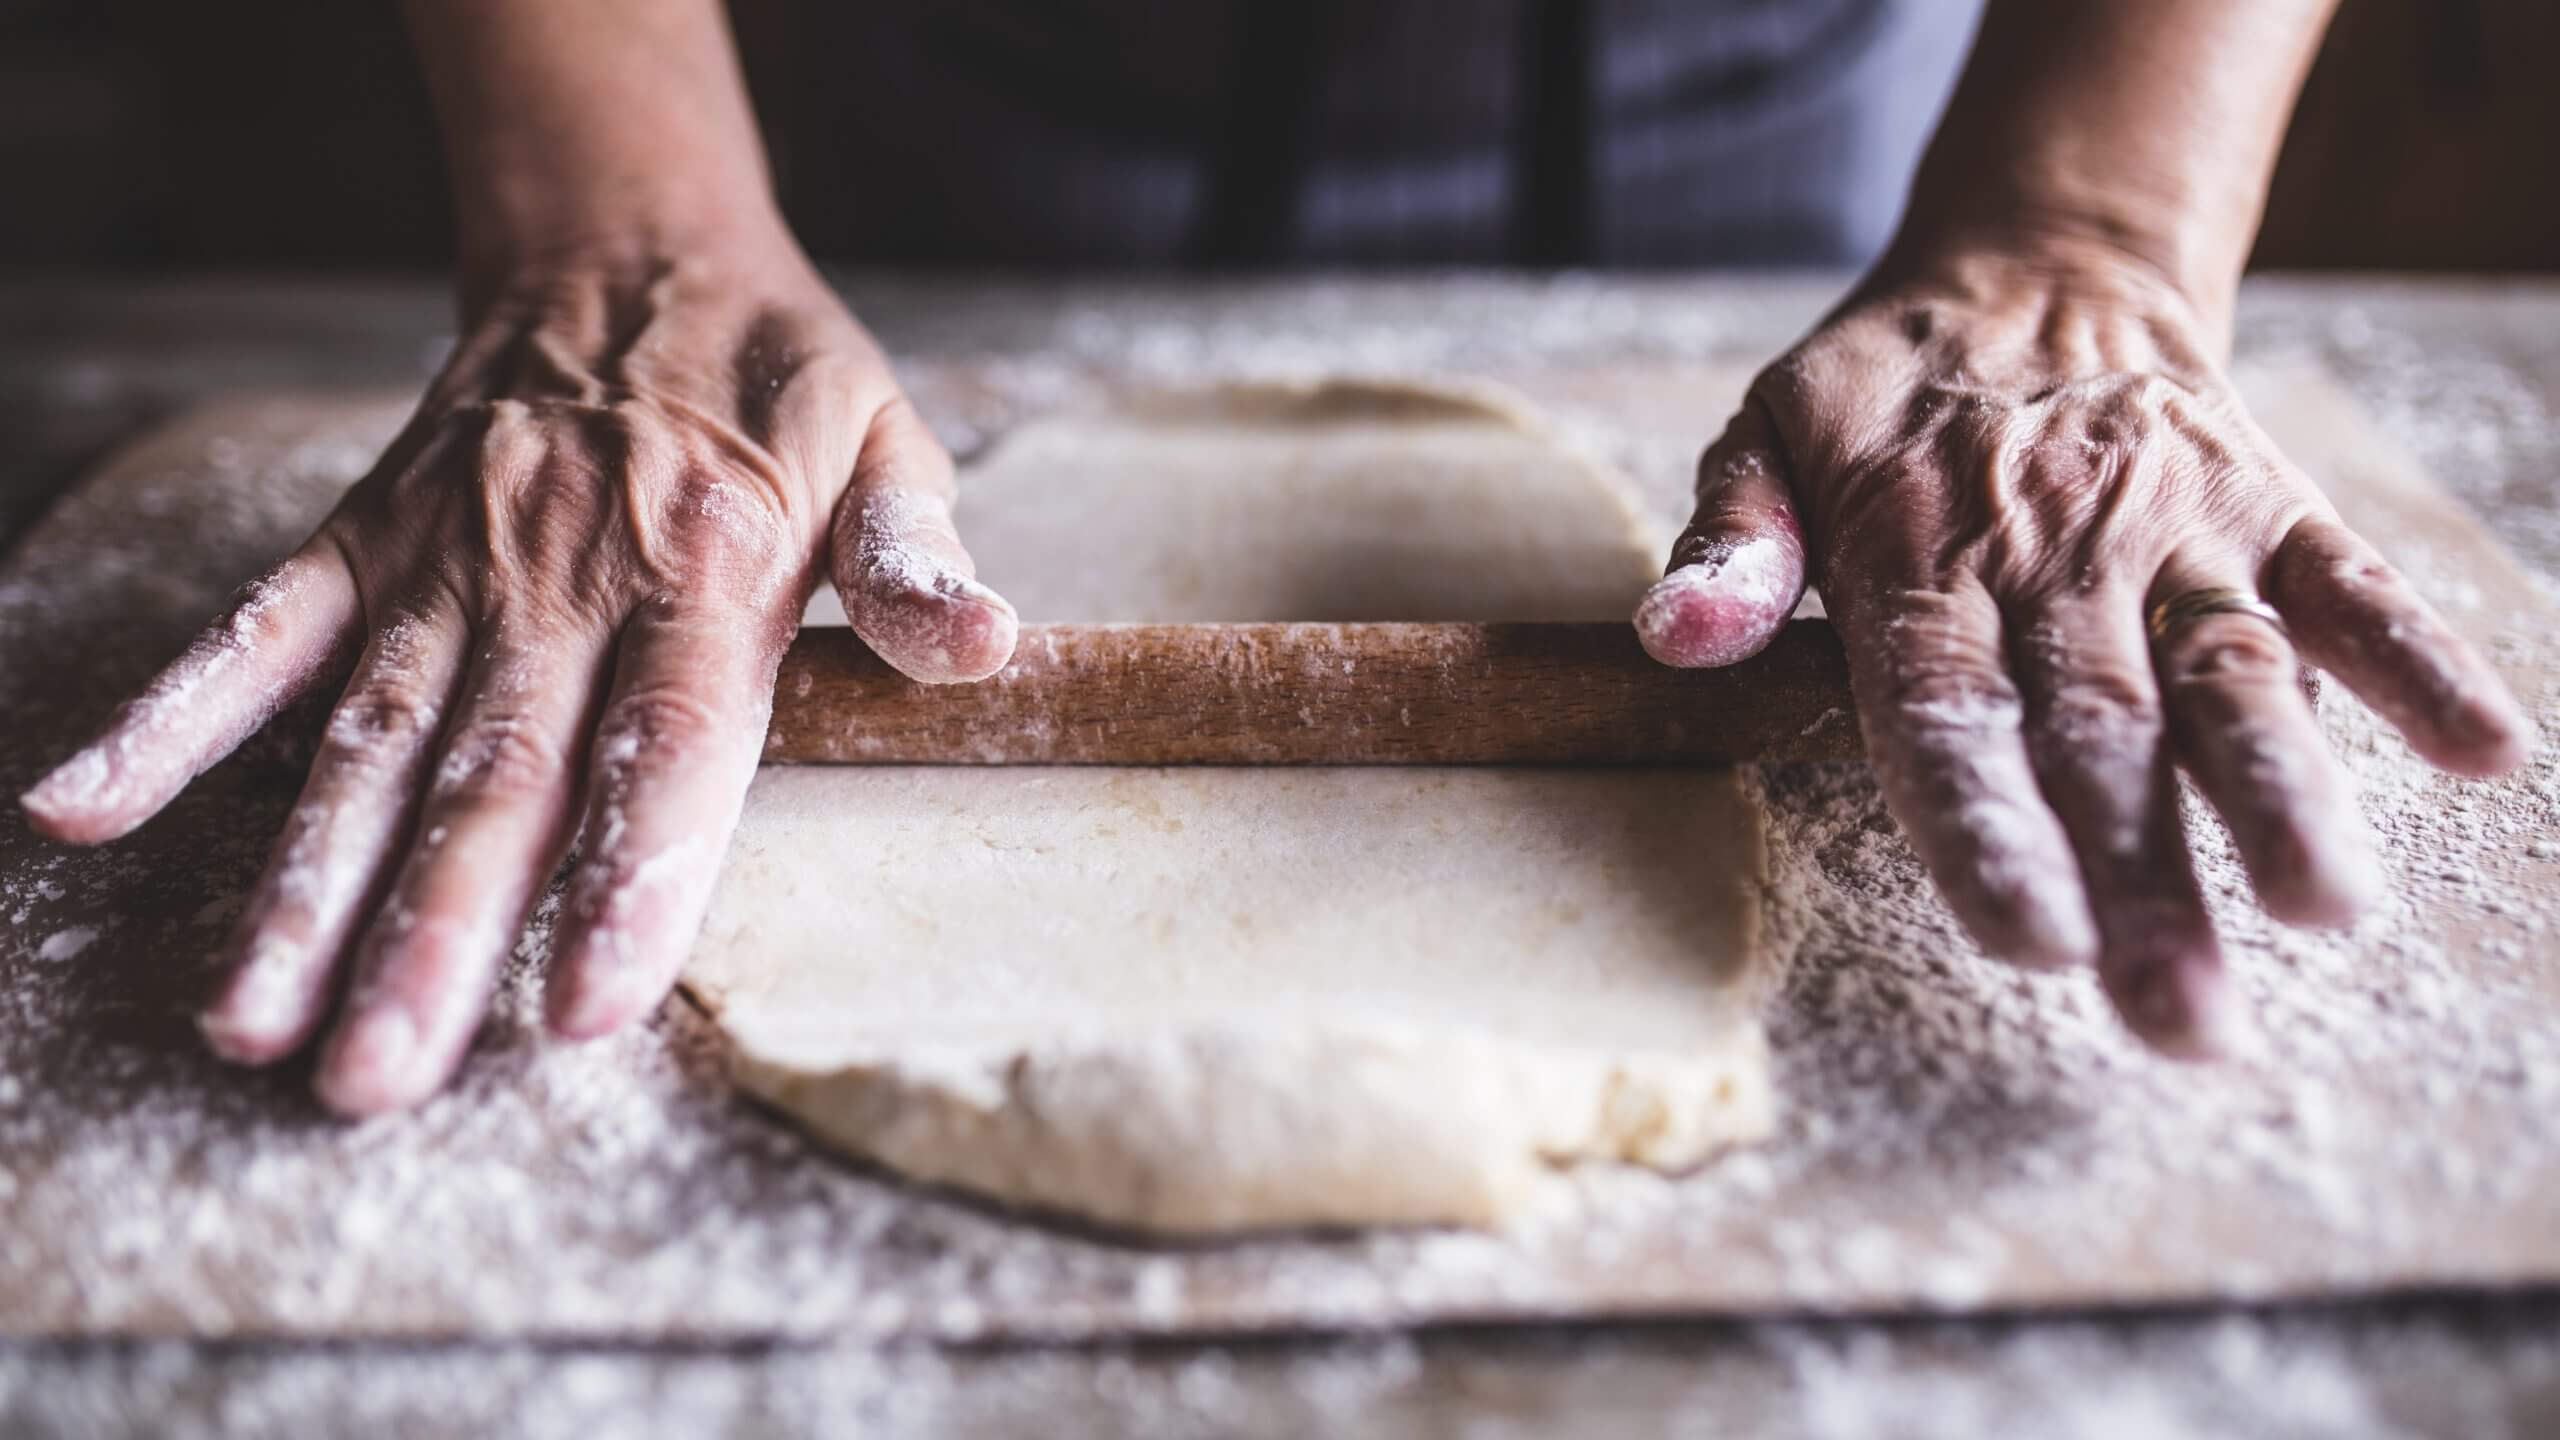 Strong hands masterfully rolling dough covered in flour on a wooden cutting board.